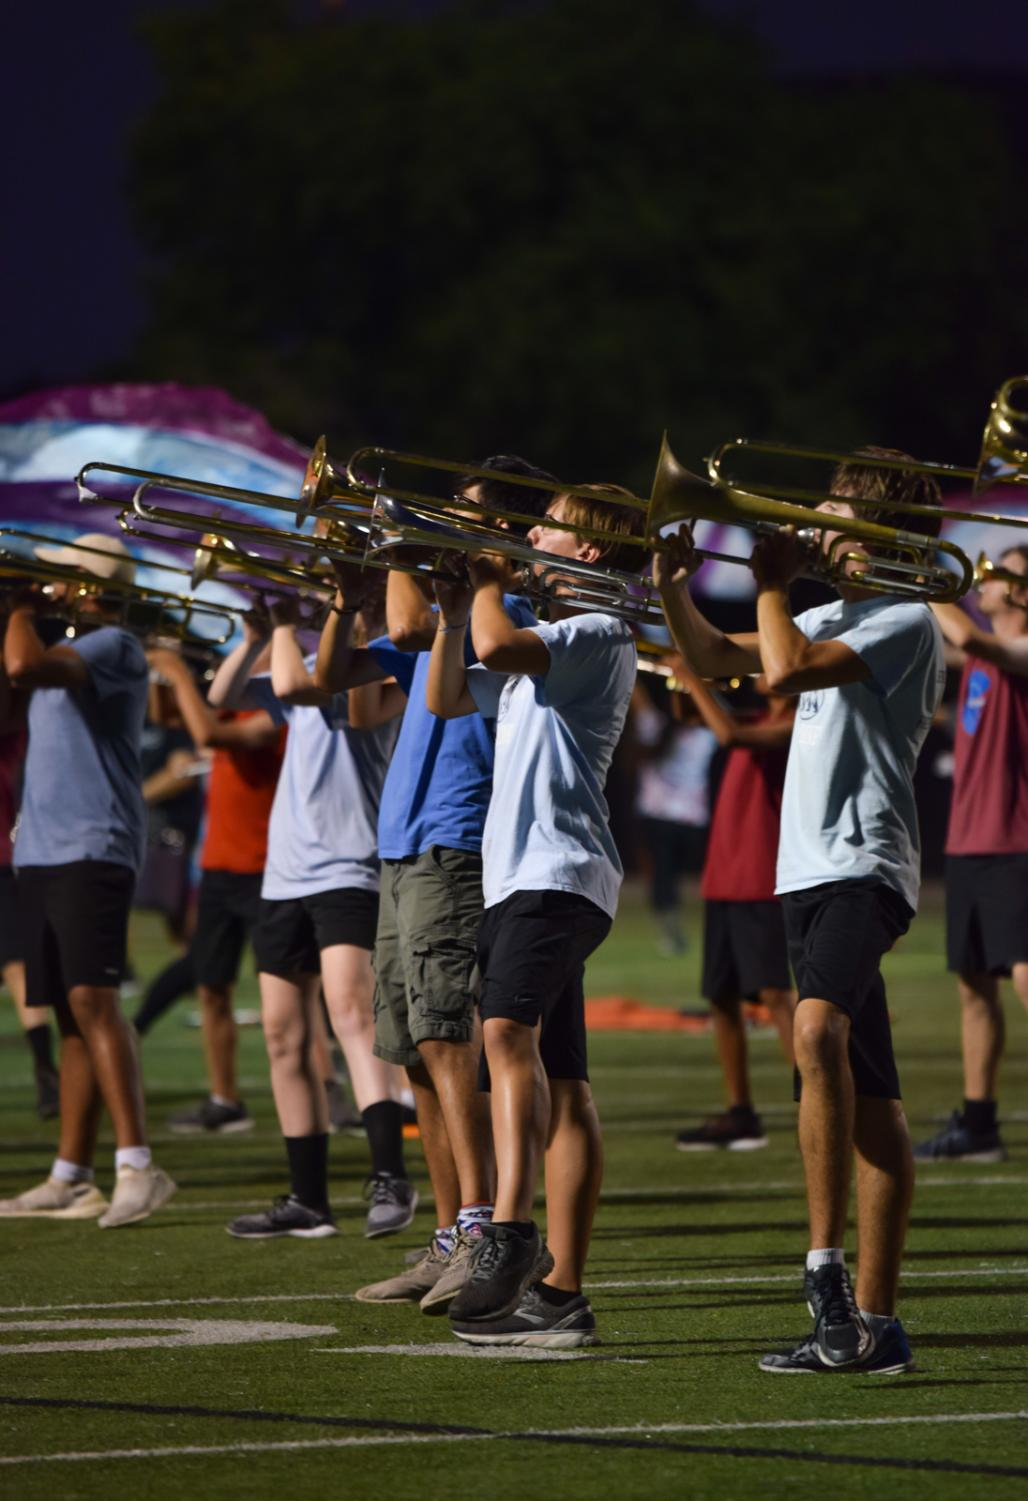 While+taking+center+field%2C+trombone+players+begin+to+lift+their+legs+for+their+choreography.